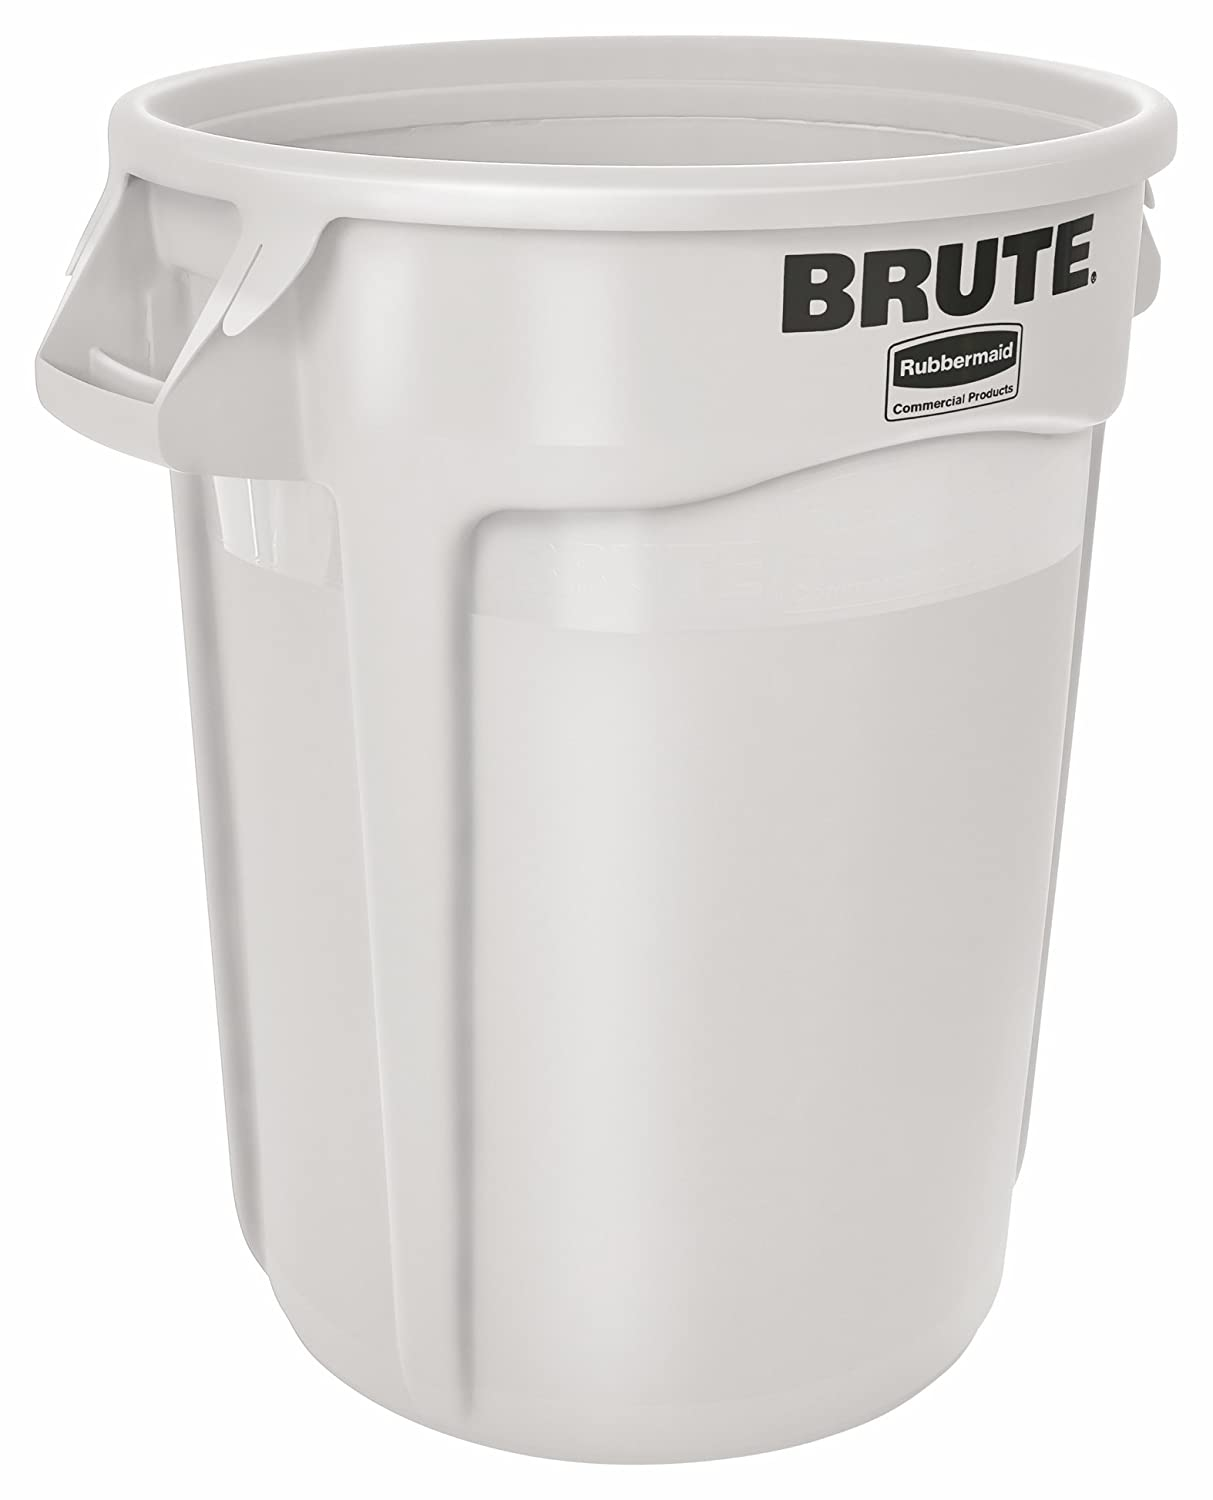 Rubbermaid FG263200WHT-001 Brute Container with Venting Channels, 121.1 L, White Newell Rubbermaid